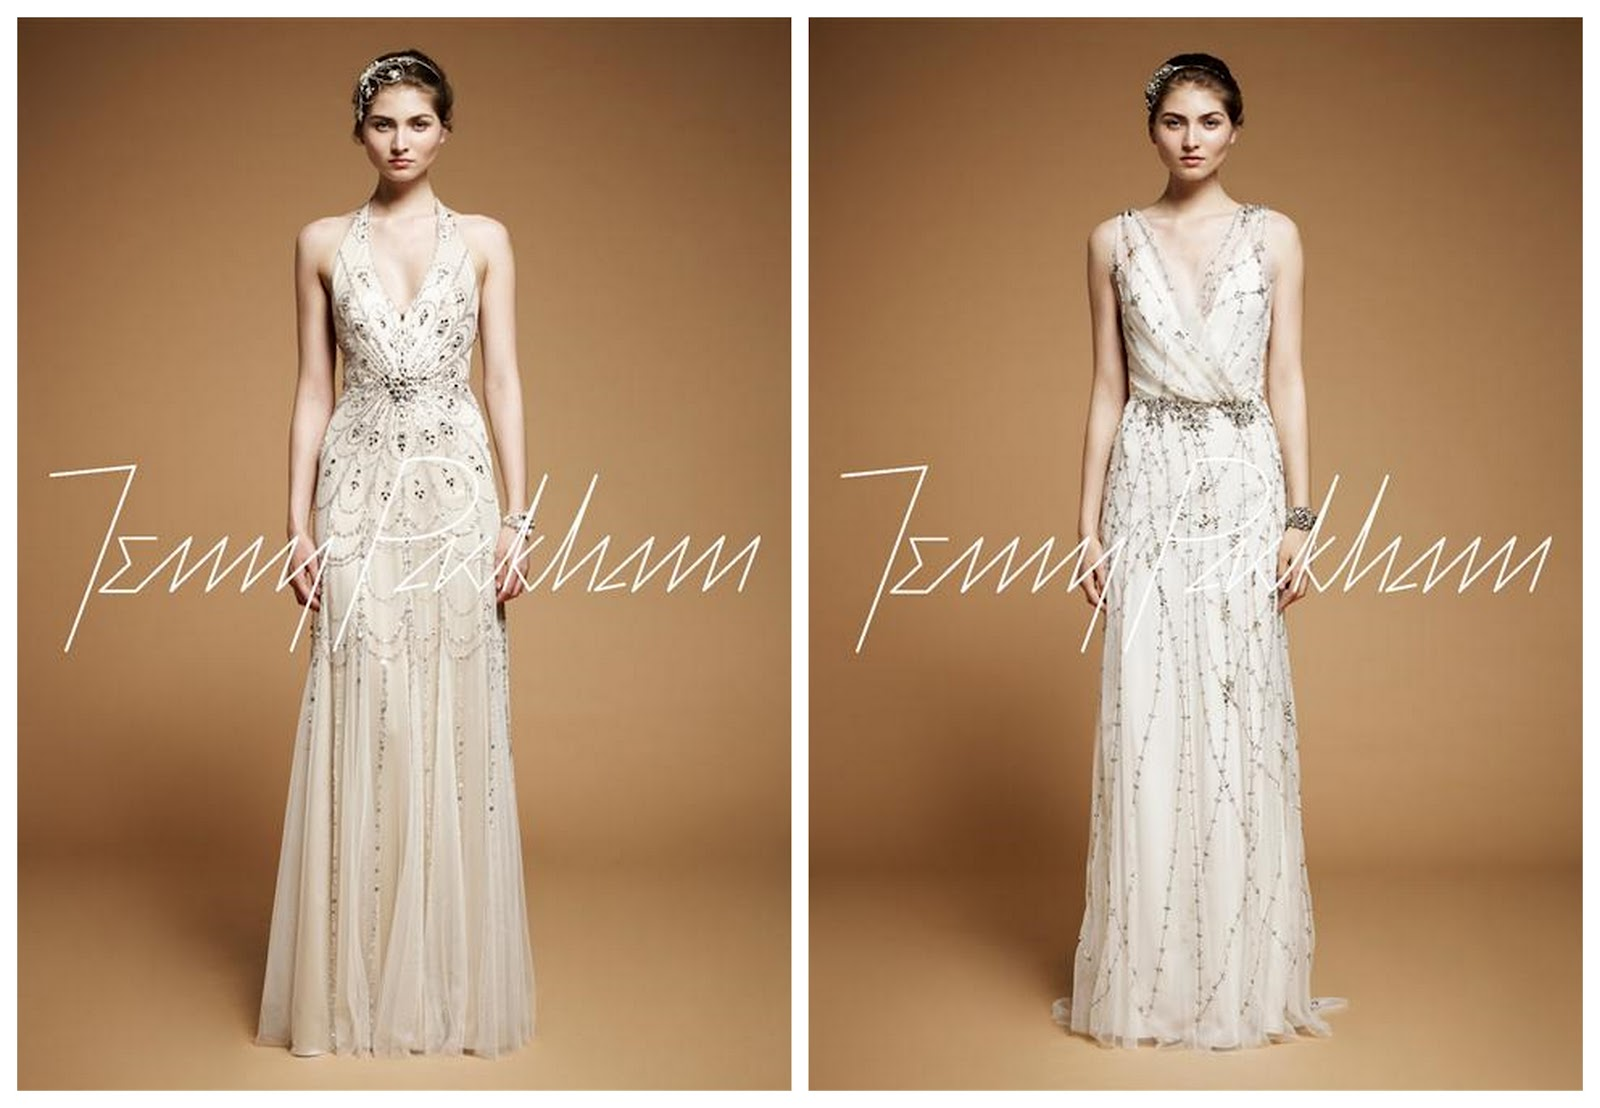 http://2.bp.blogspot.com/-jraWqLva_zQ/TzZWCpZMymI/AAAAAAABPFc/dyAtt-YAqqg/s1600/Elegant_Sparkly_Wedding_Dresses_Jenny_Packham_Before_the_Big_Day_Wedding_Blog_UK+2.jpg